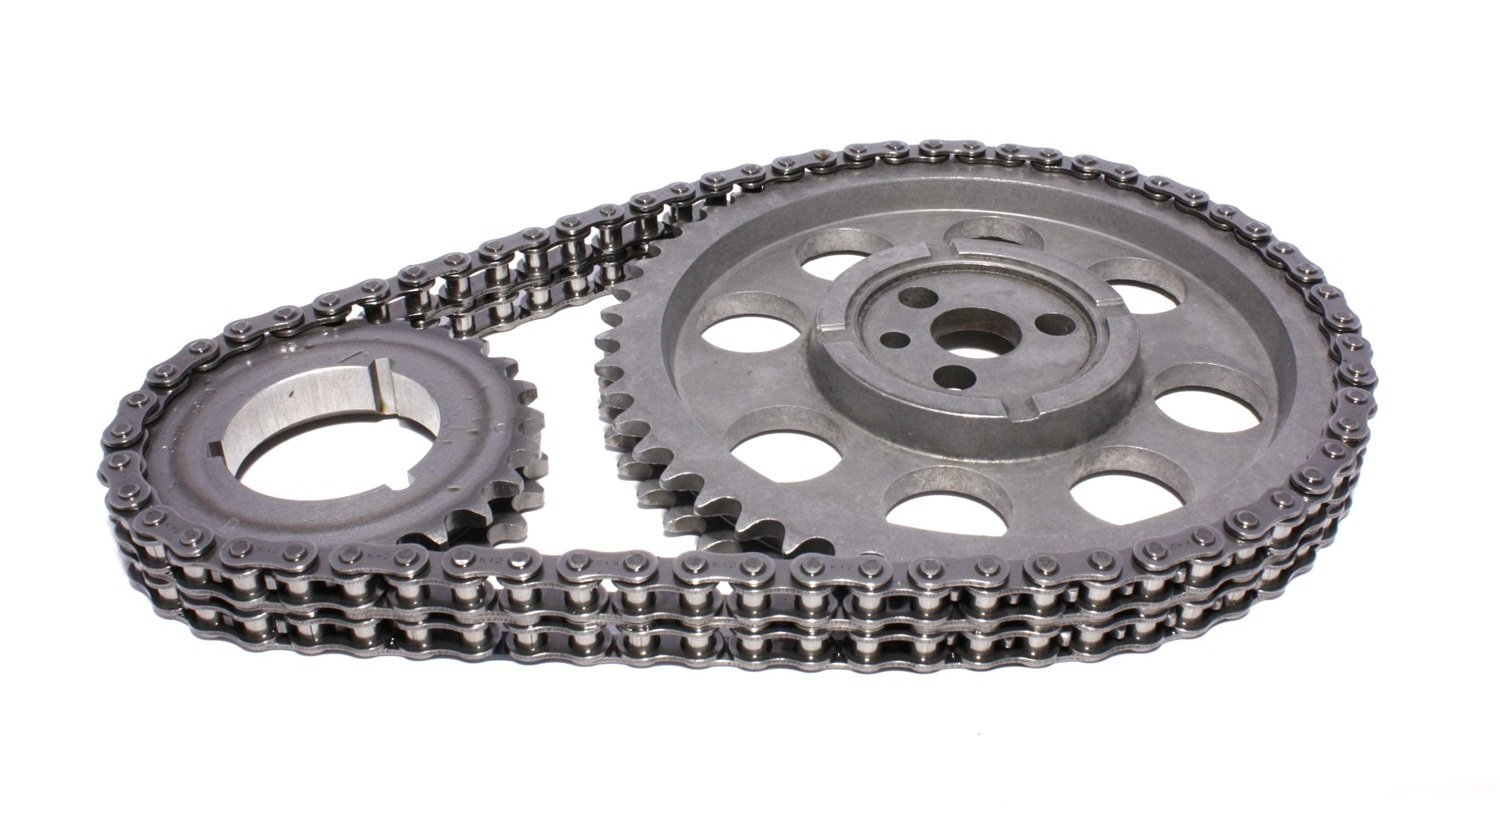 Competition Cams 2110 Magnum Double Roller Timing Set for Big Block Chevrolet by Comp Cams